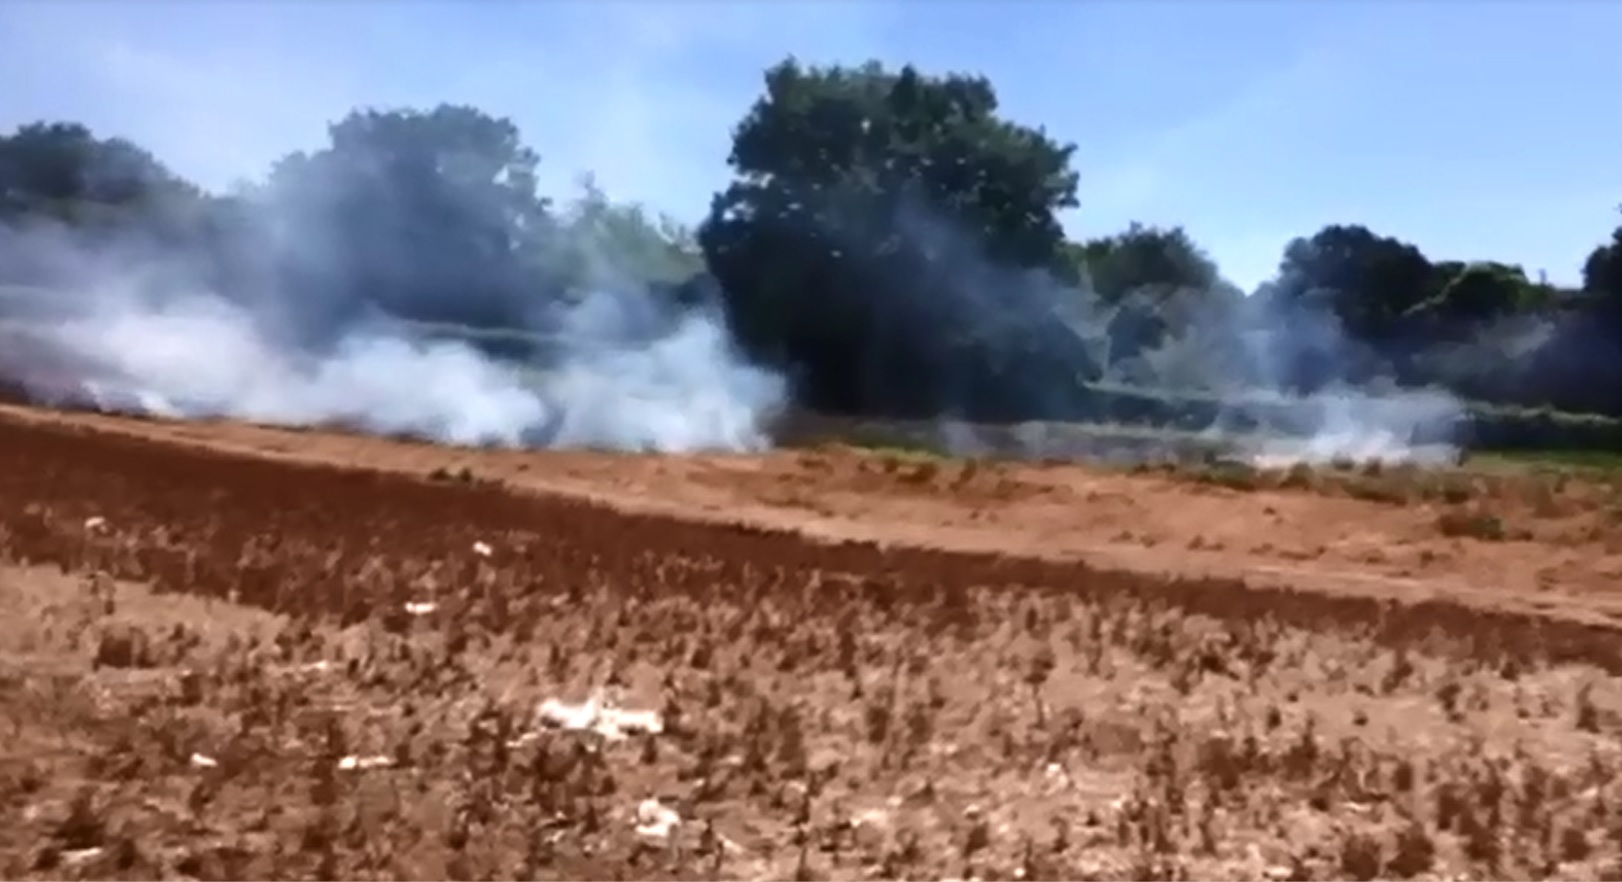 VIDEO: Fields on fire in Pedmore